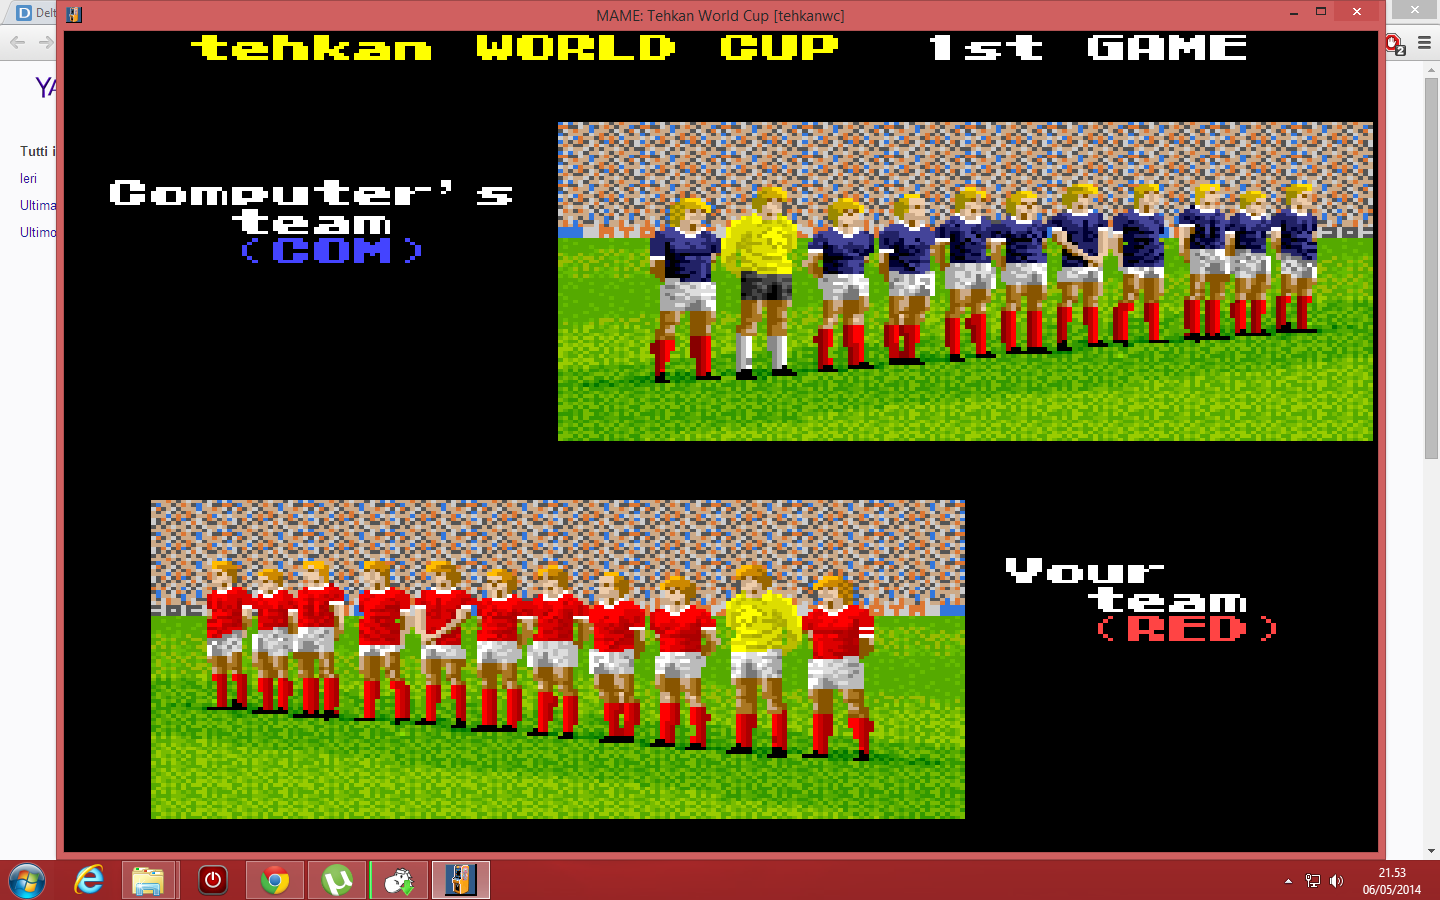 Tehkan World Cup: First Match [Point Difference] [tehkanwc] 11 points